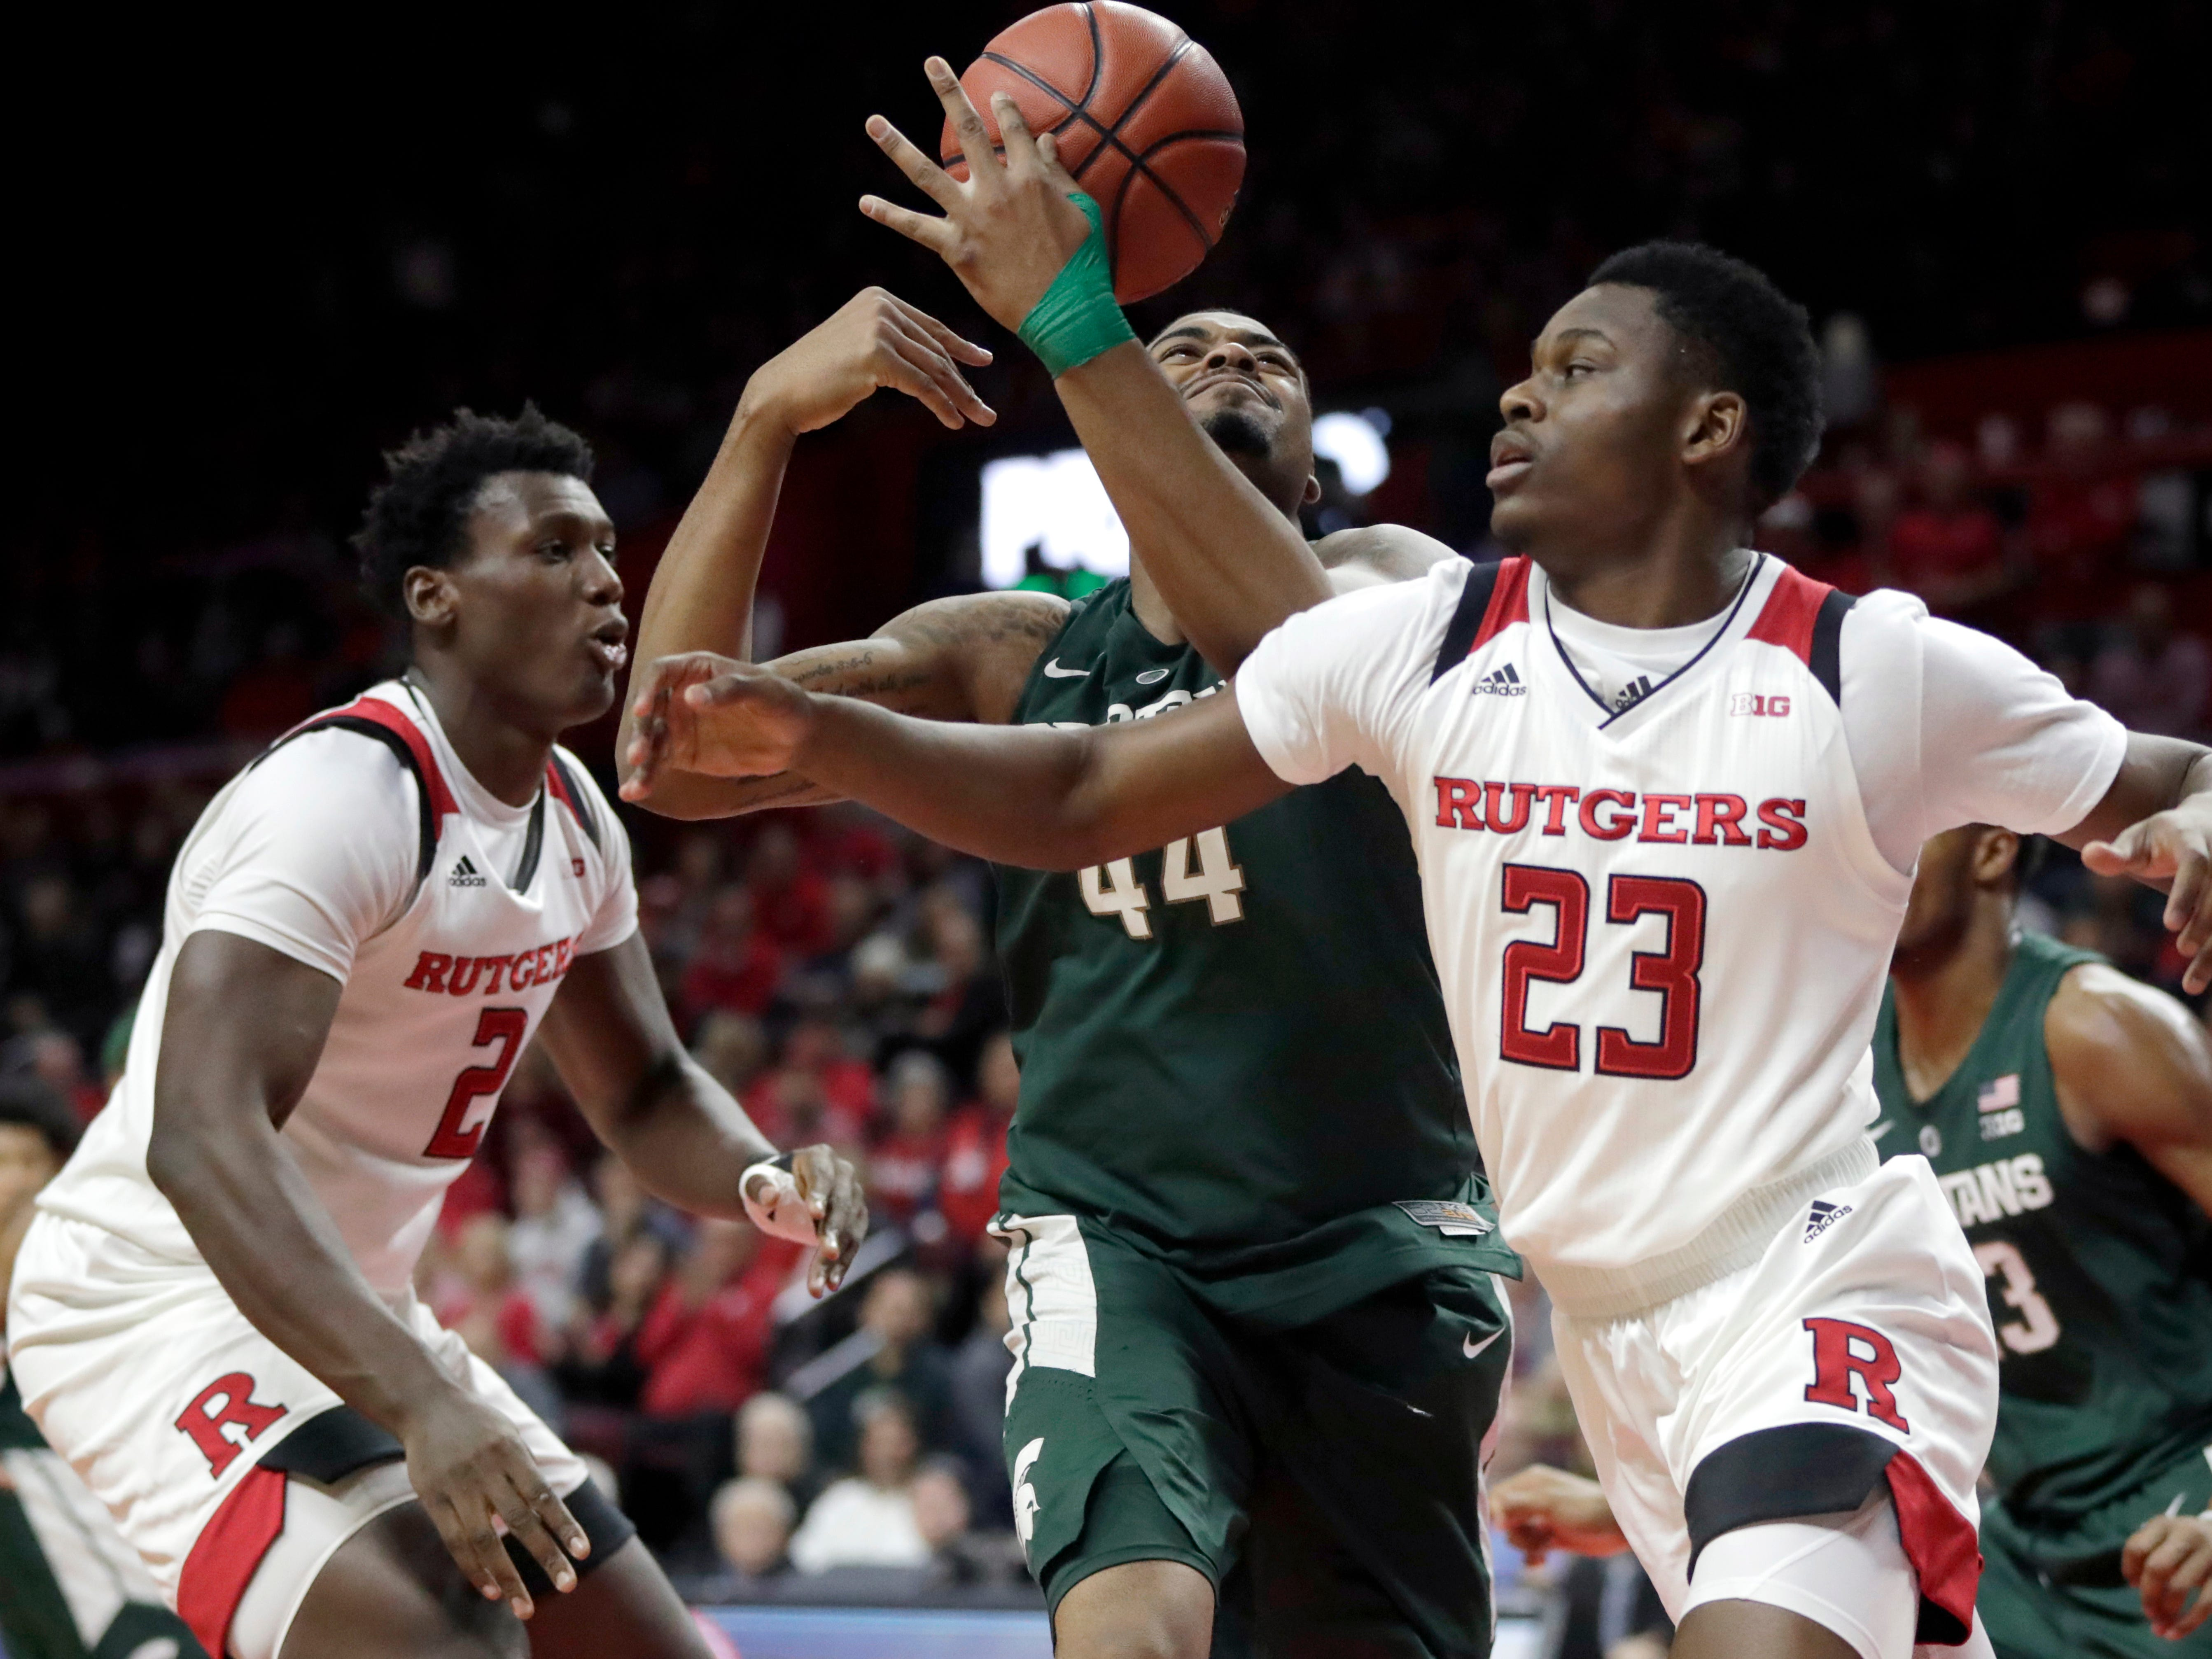 Michigan State forward Nick Ward (44) collects a rebound while Rutgers guard Montez Mathis (23) and center Shaquille Doorson (2) attack during the first half of an NCAA college basketball game, Friday, Nov. 30, 2018, in Piscataway, N.J.